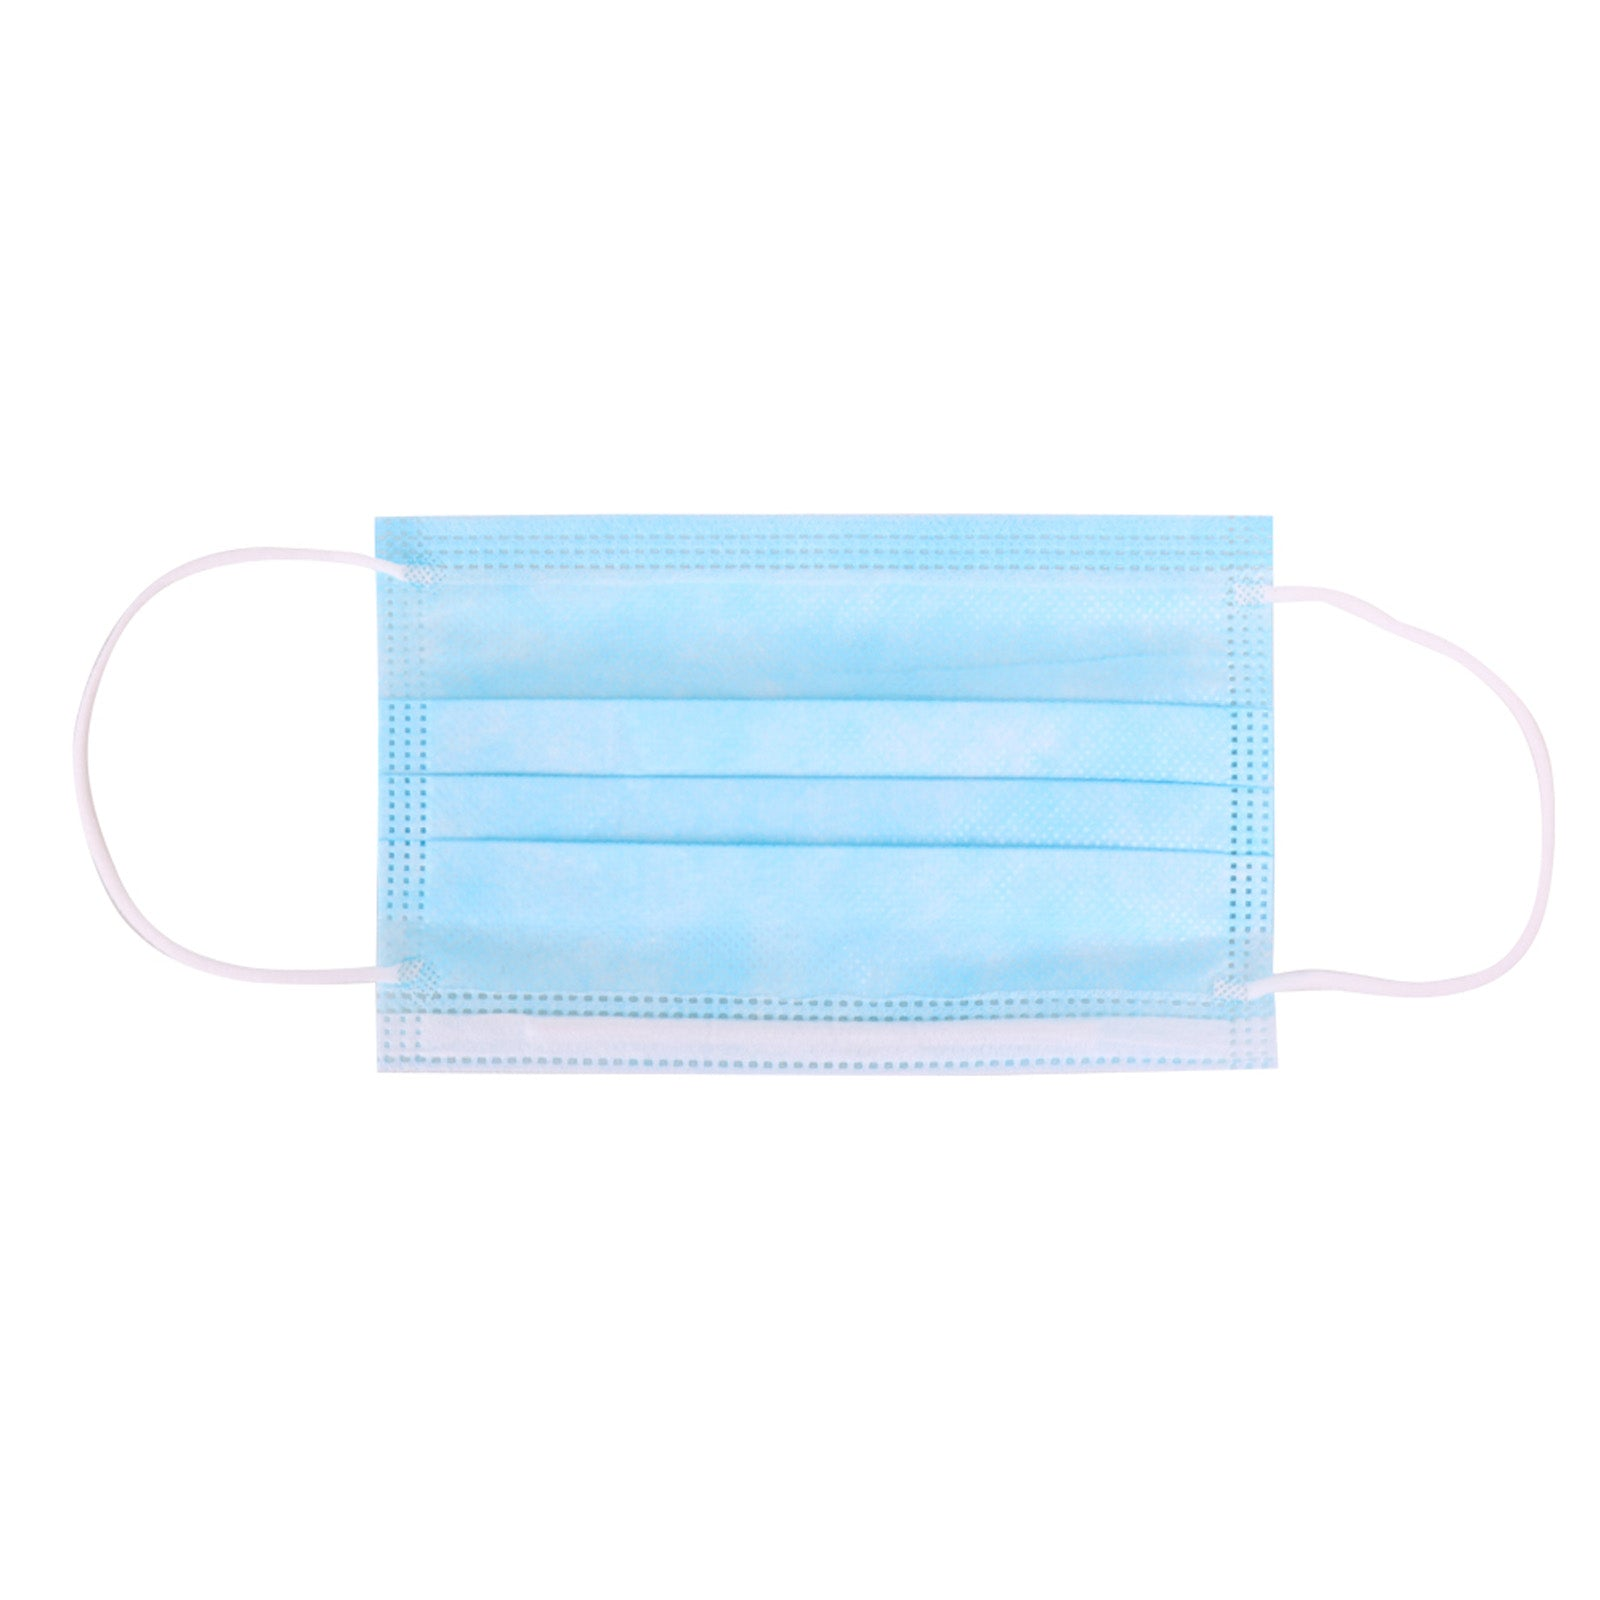 KD-FMBL  American Bling Kids 3 Ply Disposable Blue Face Mask Non-Medical (5pcs/Pack)